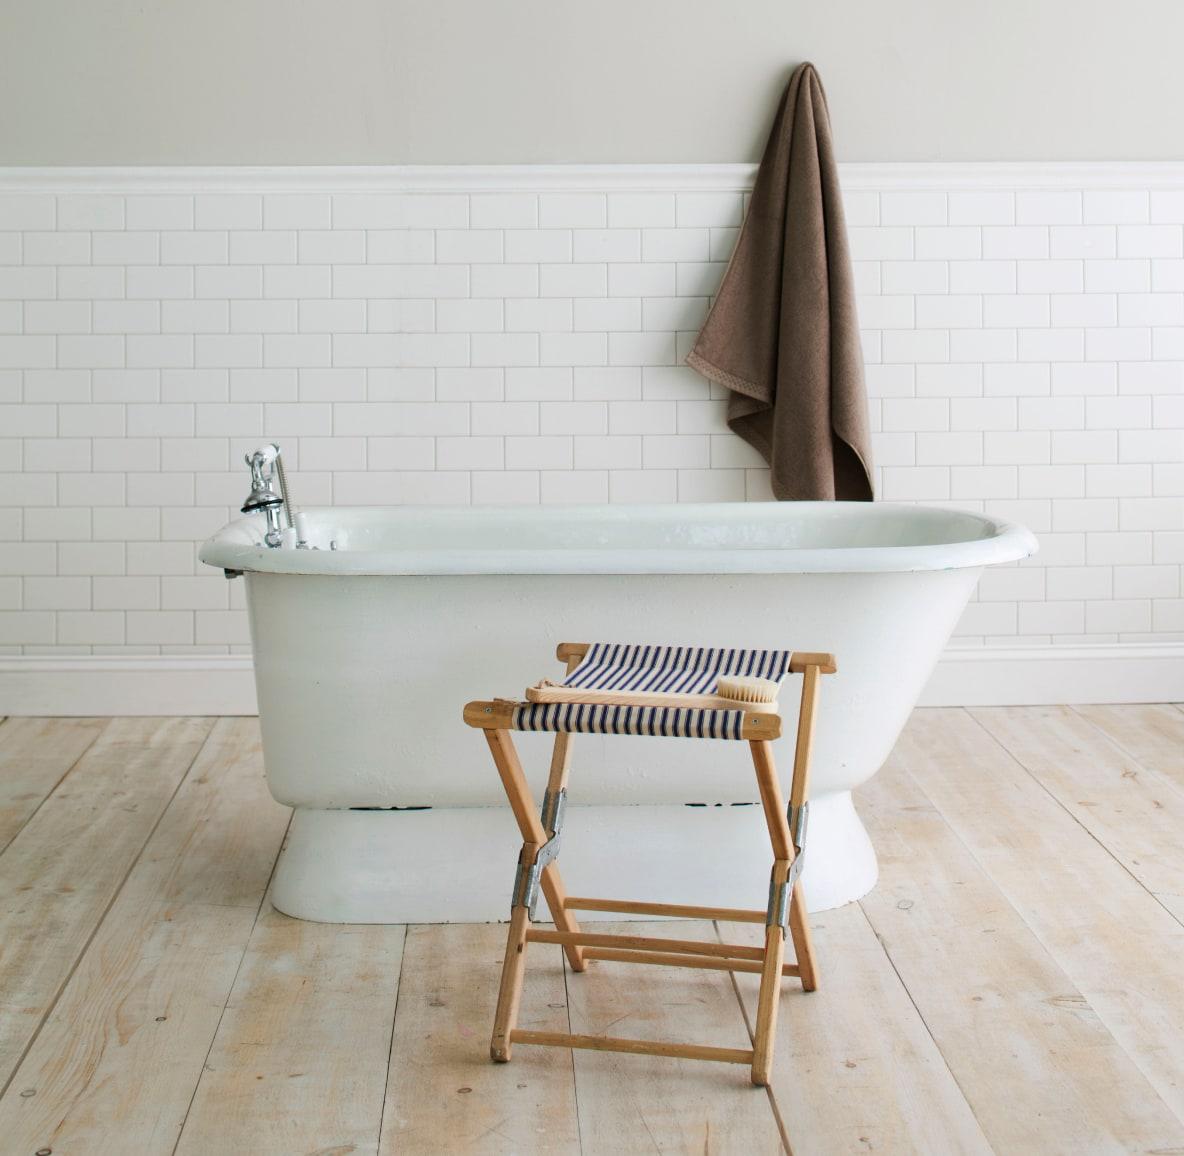 Free-standing bathtub next to folding chair and brown hanging towel